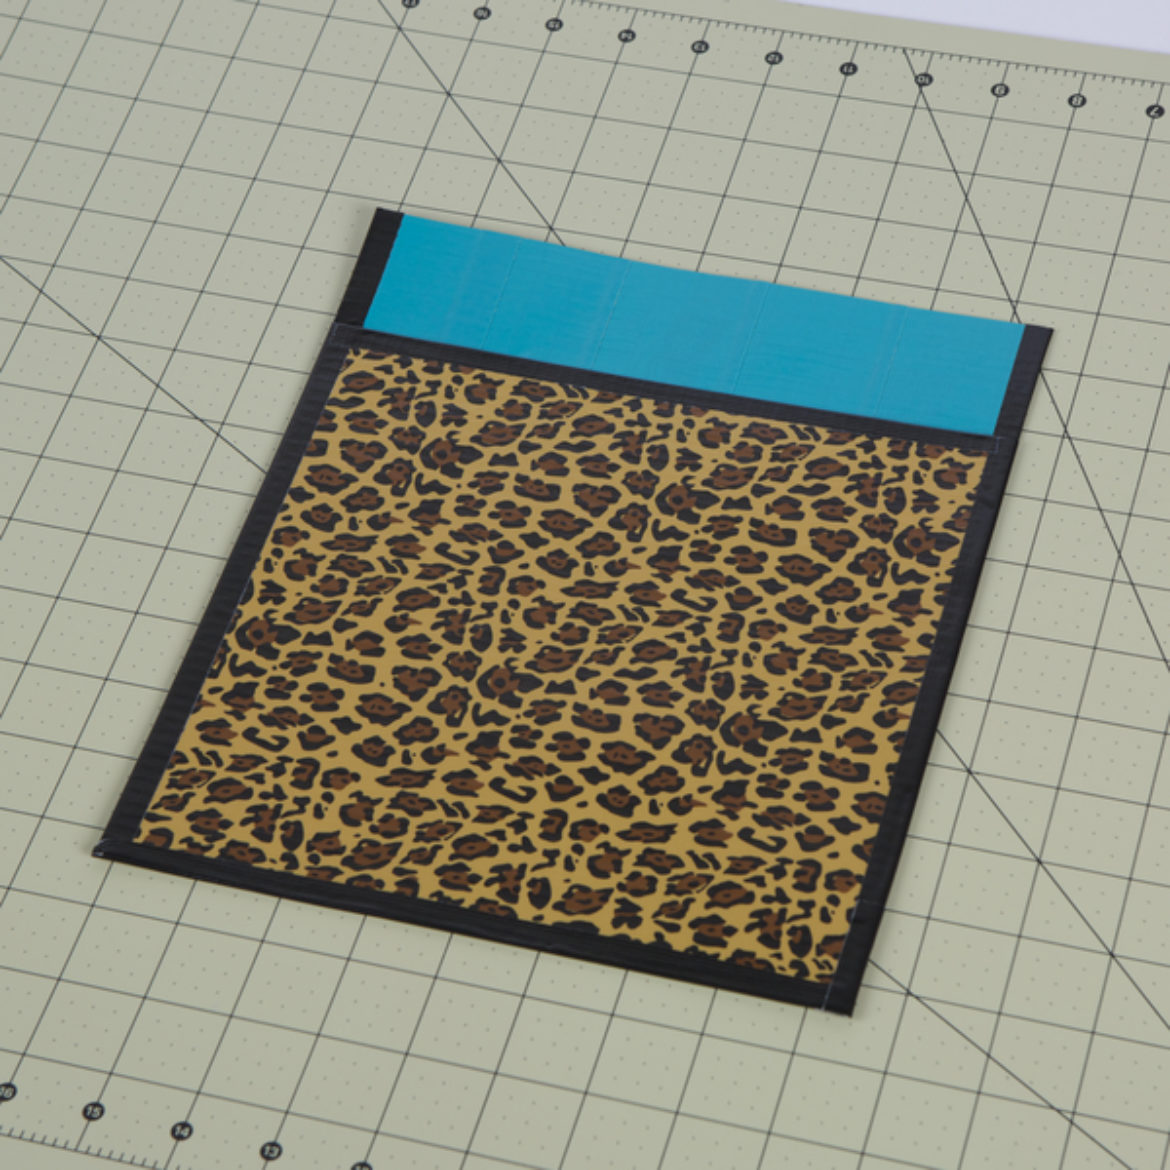 smaller sheet attached to the larger sheet with tape